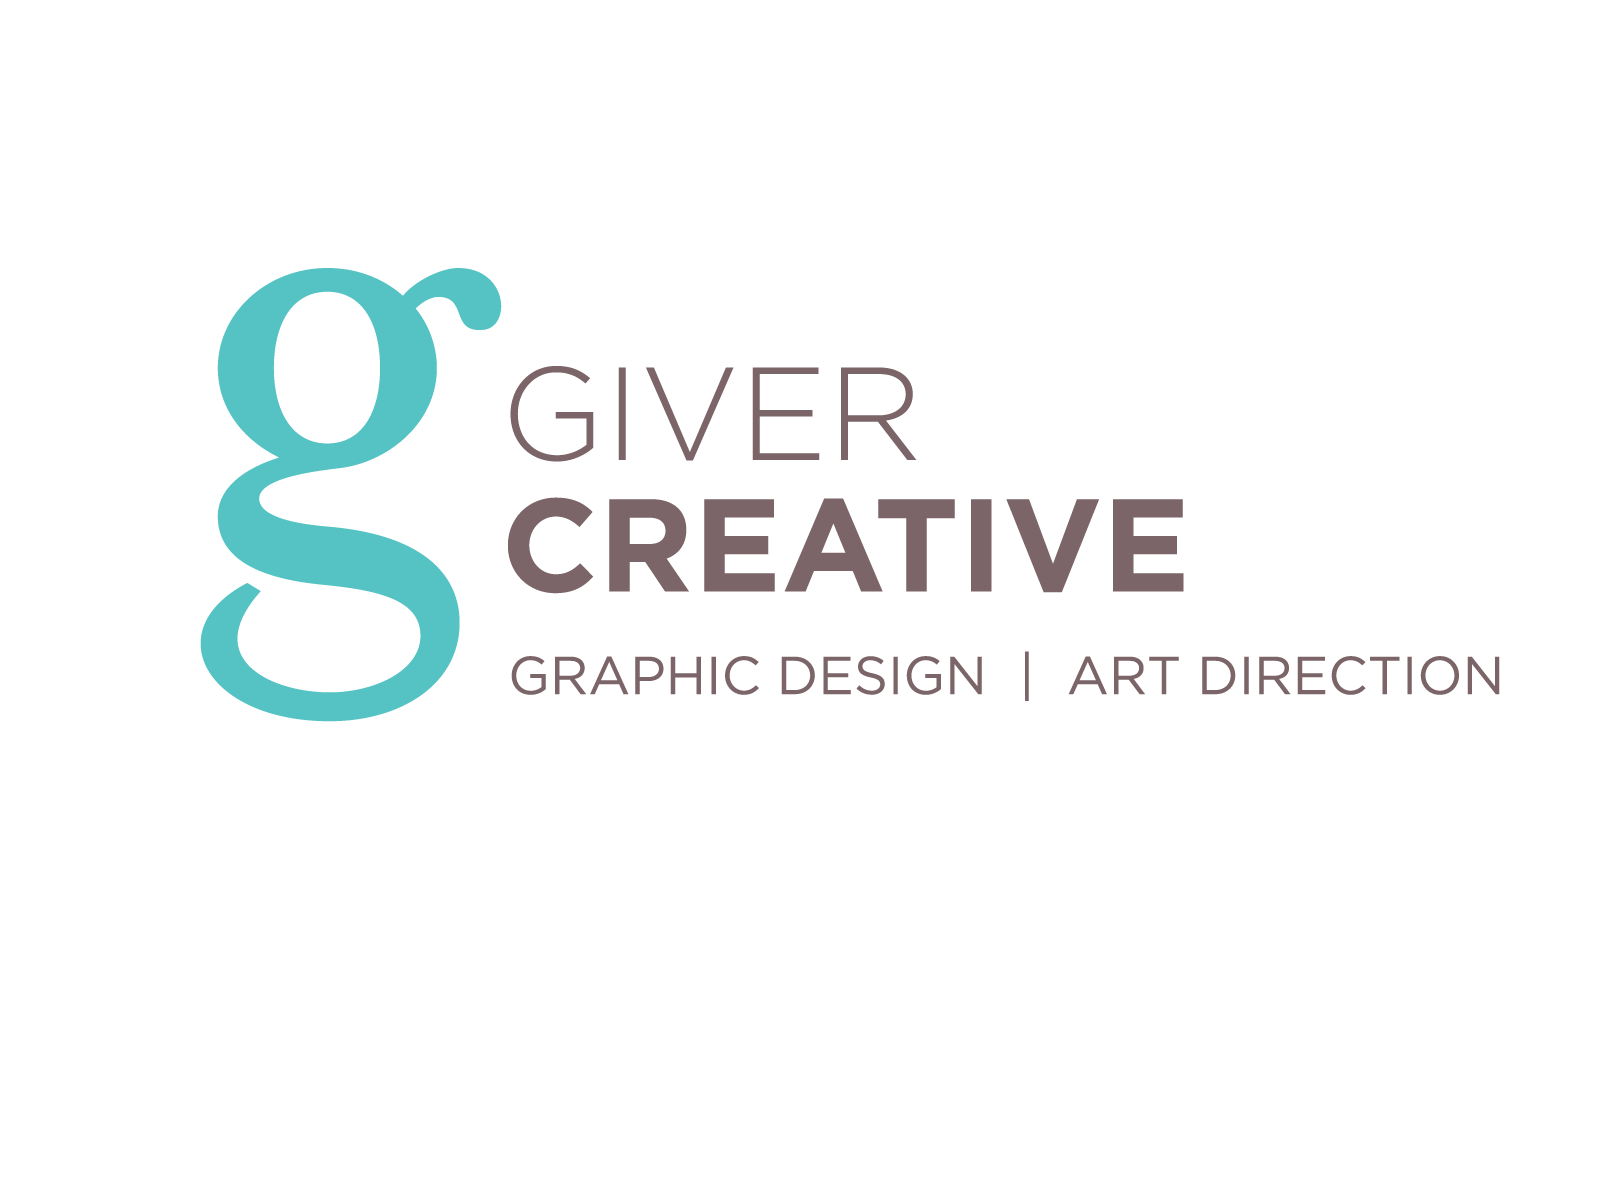 GiverCreative_logo_horizontal